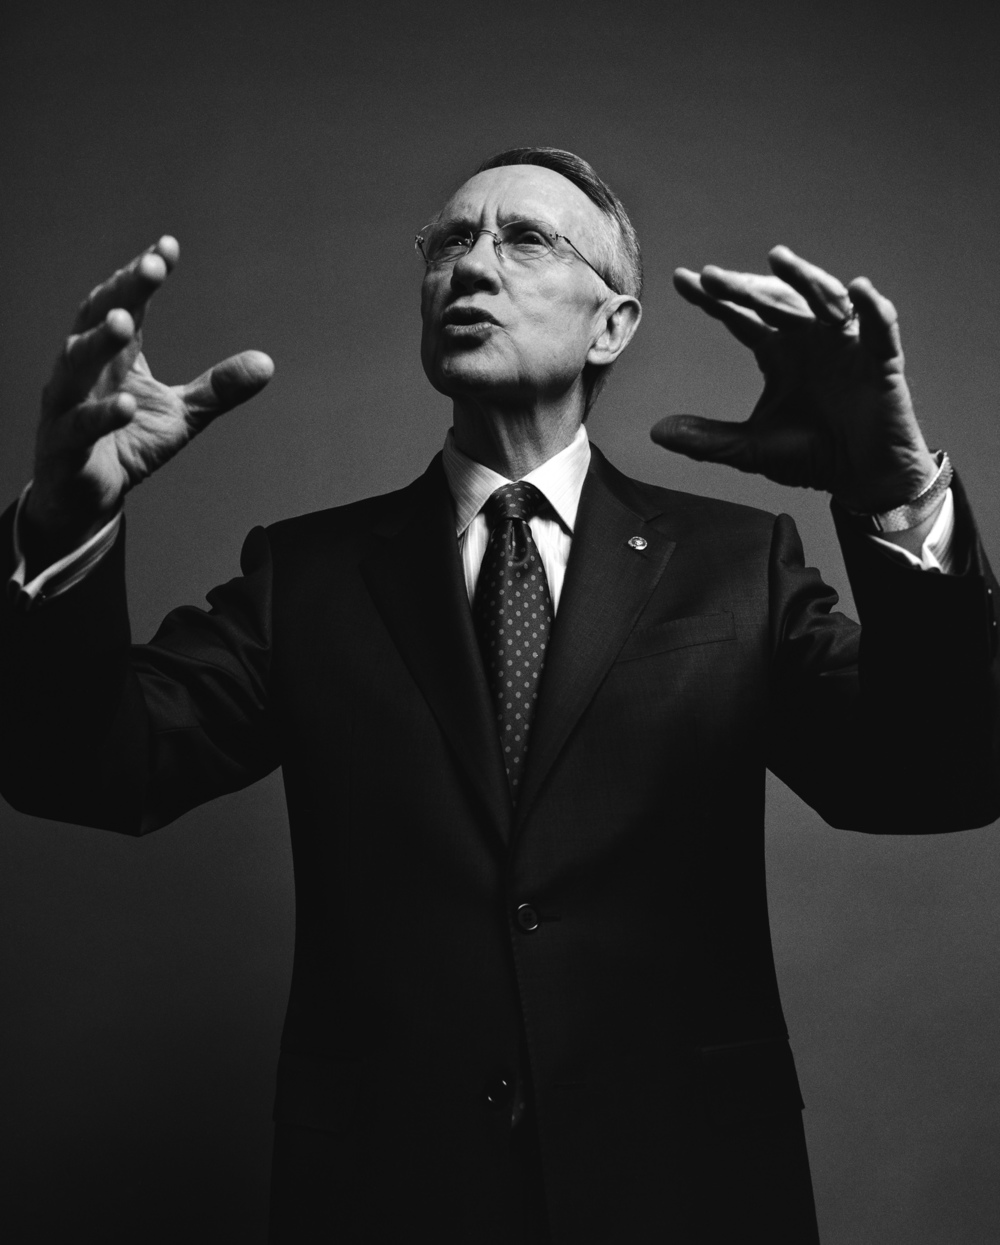 Harry Reid - Washington, D.C.